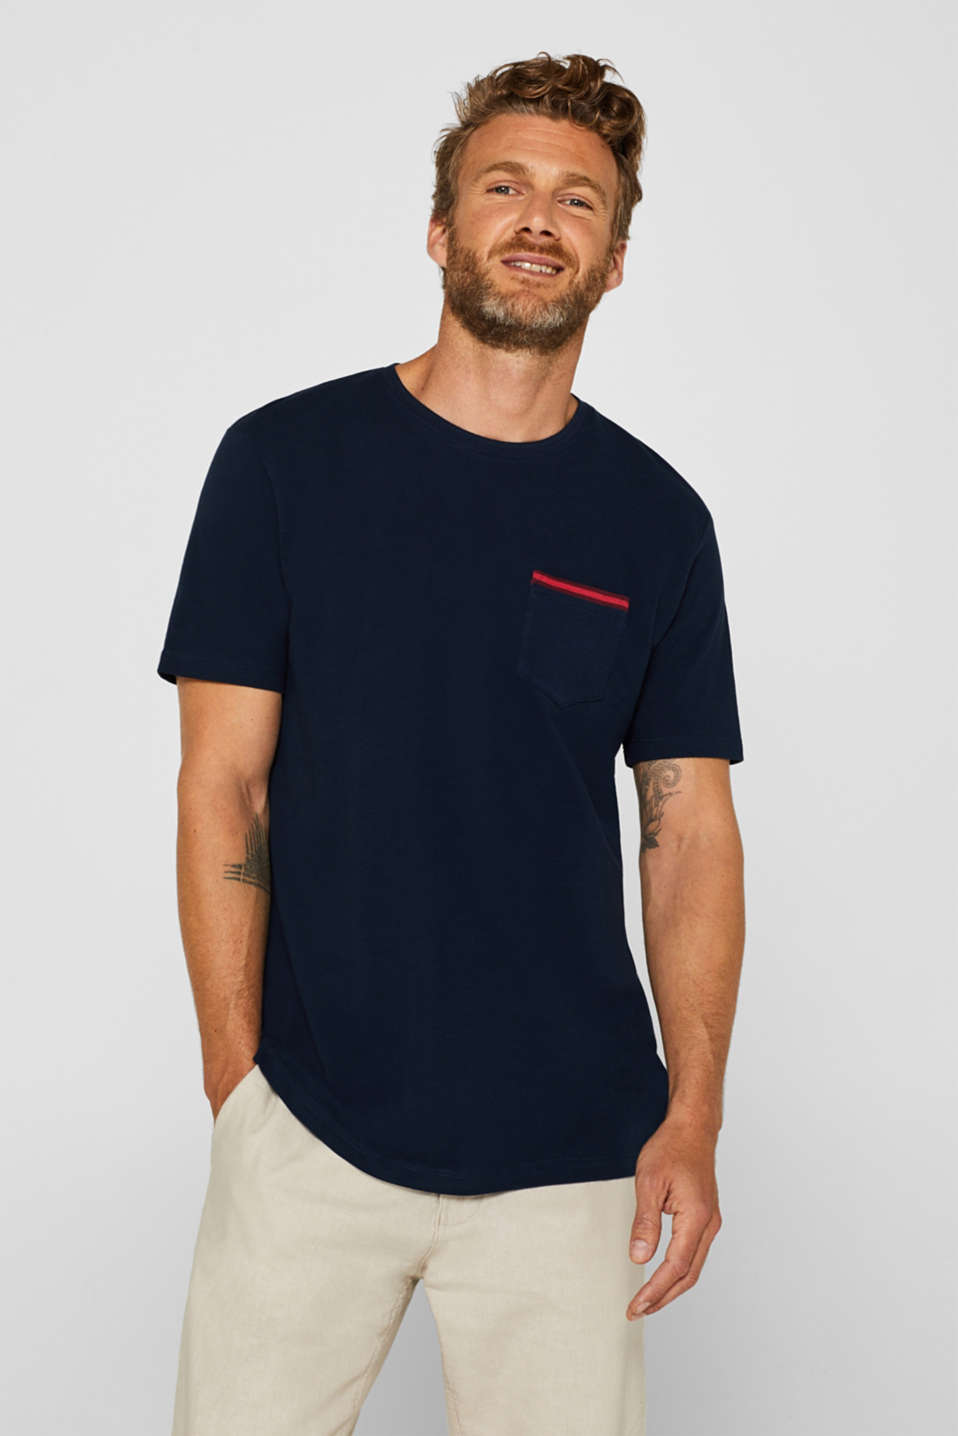 Piqué top with a breast pocket, 100% cotton